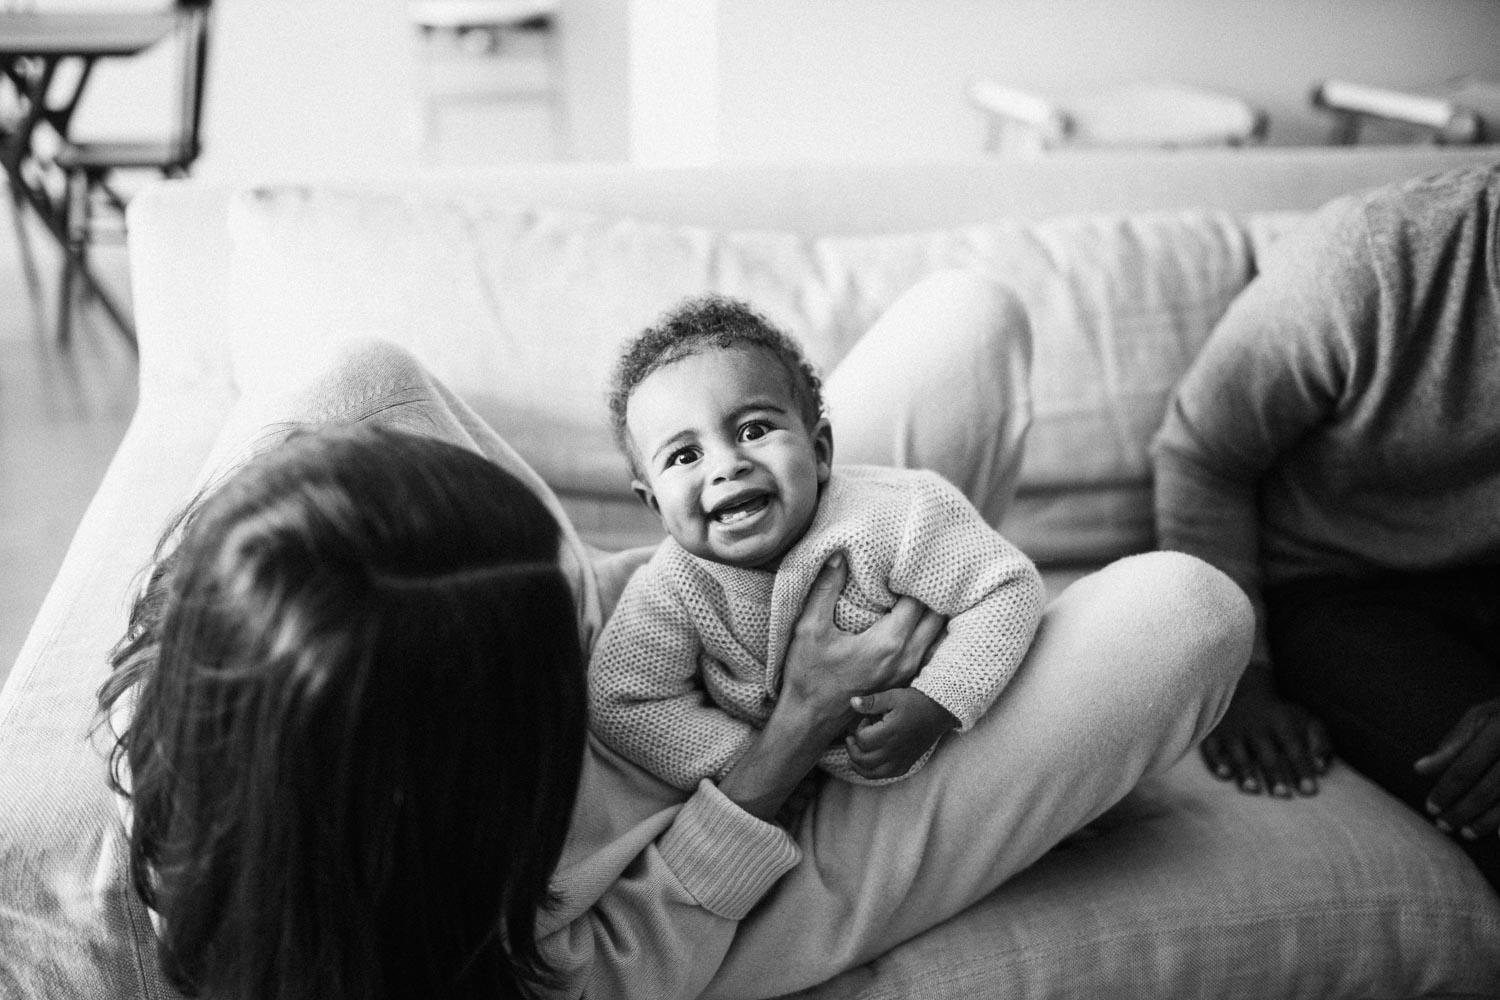 candid-black-and-white-photo-of-mother-and-son-laughing-during-in-home-session-with-jen-farichild-photography-la-california